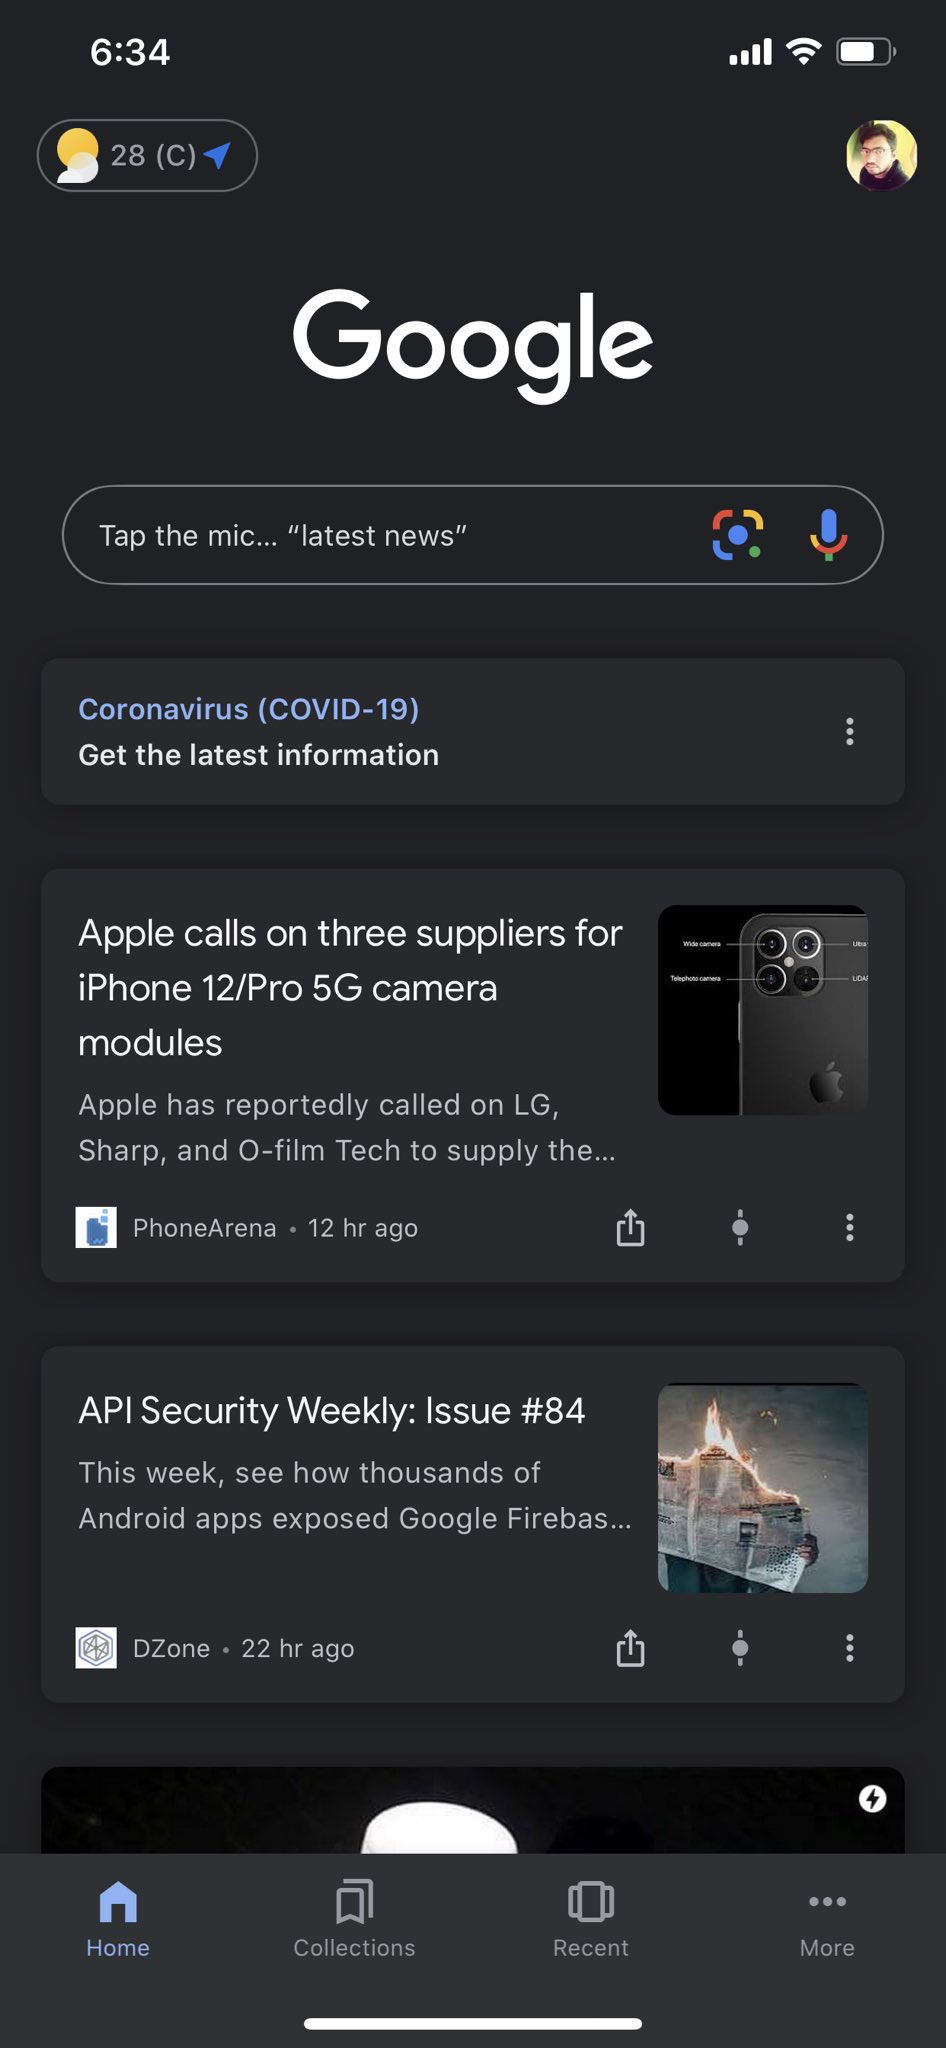 Google Search app for iOS got Dark mode enabled. #apps #iphone #ipad https://t.co/1F5IxgeZoR